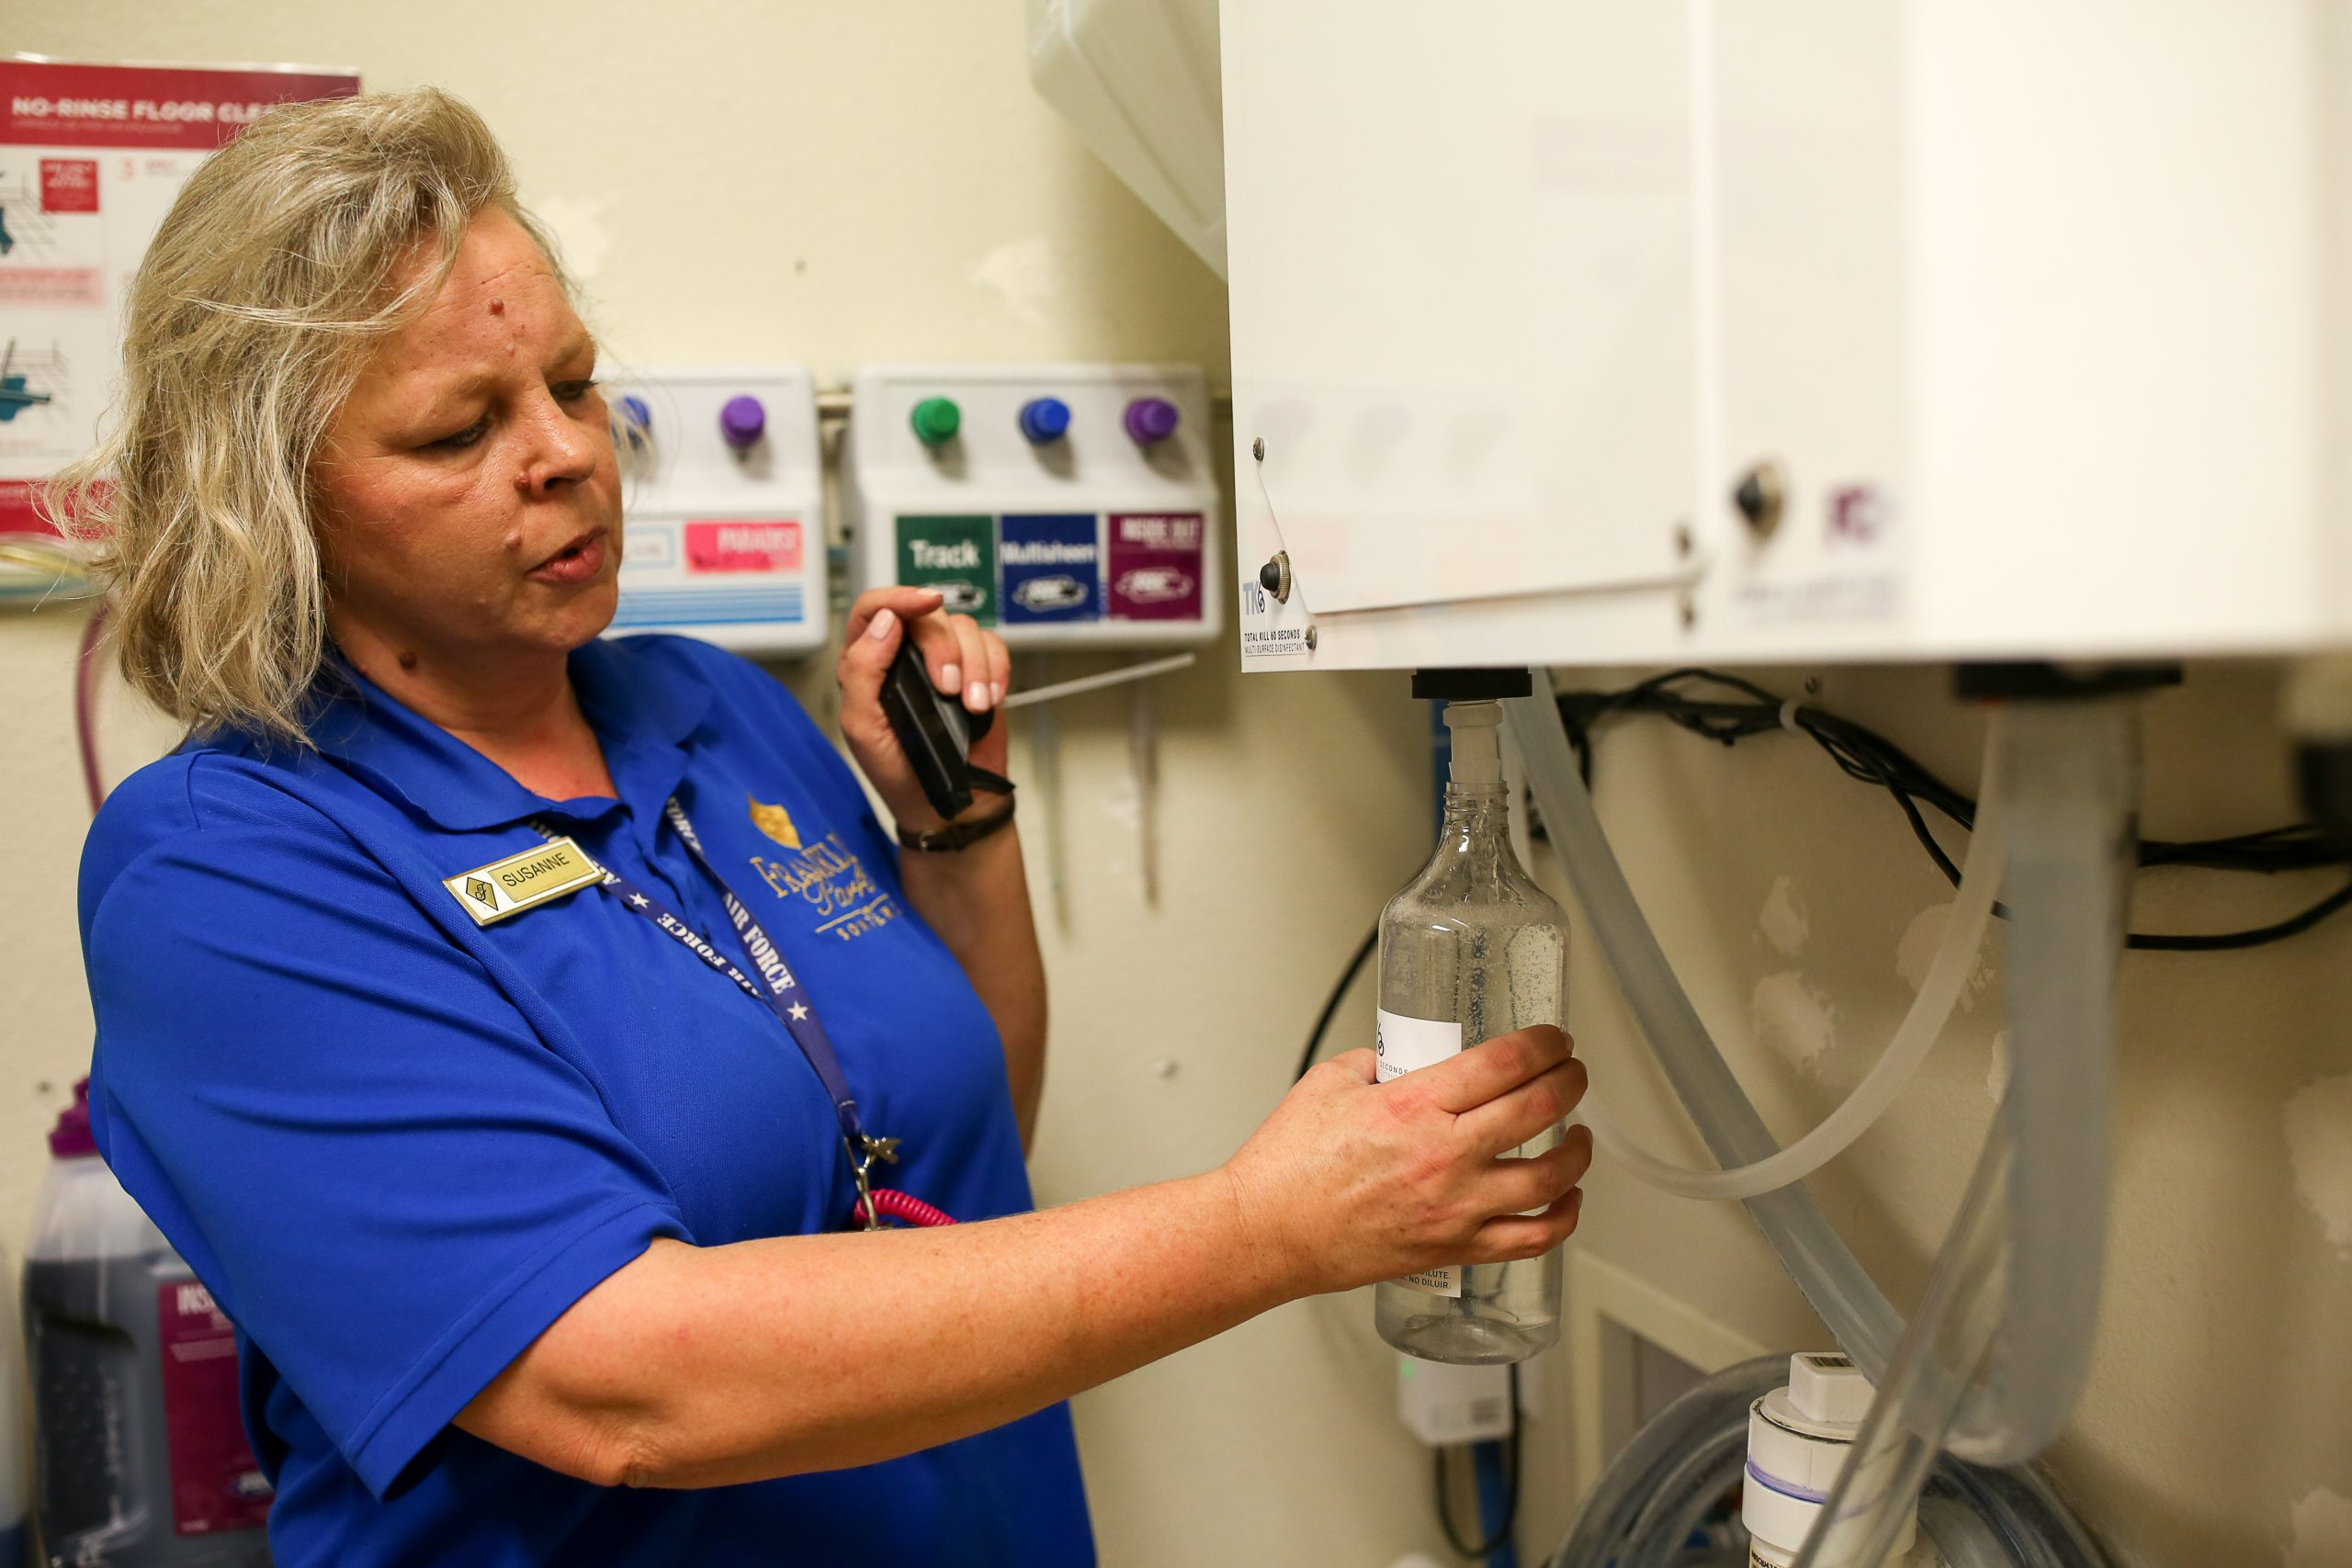 Franklin Park Housekeeping Supervisor Susanne Hutchinson fill a cleaning bottle with R-Water using a press of a button.